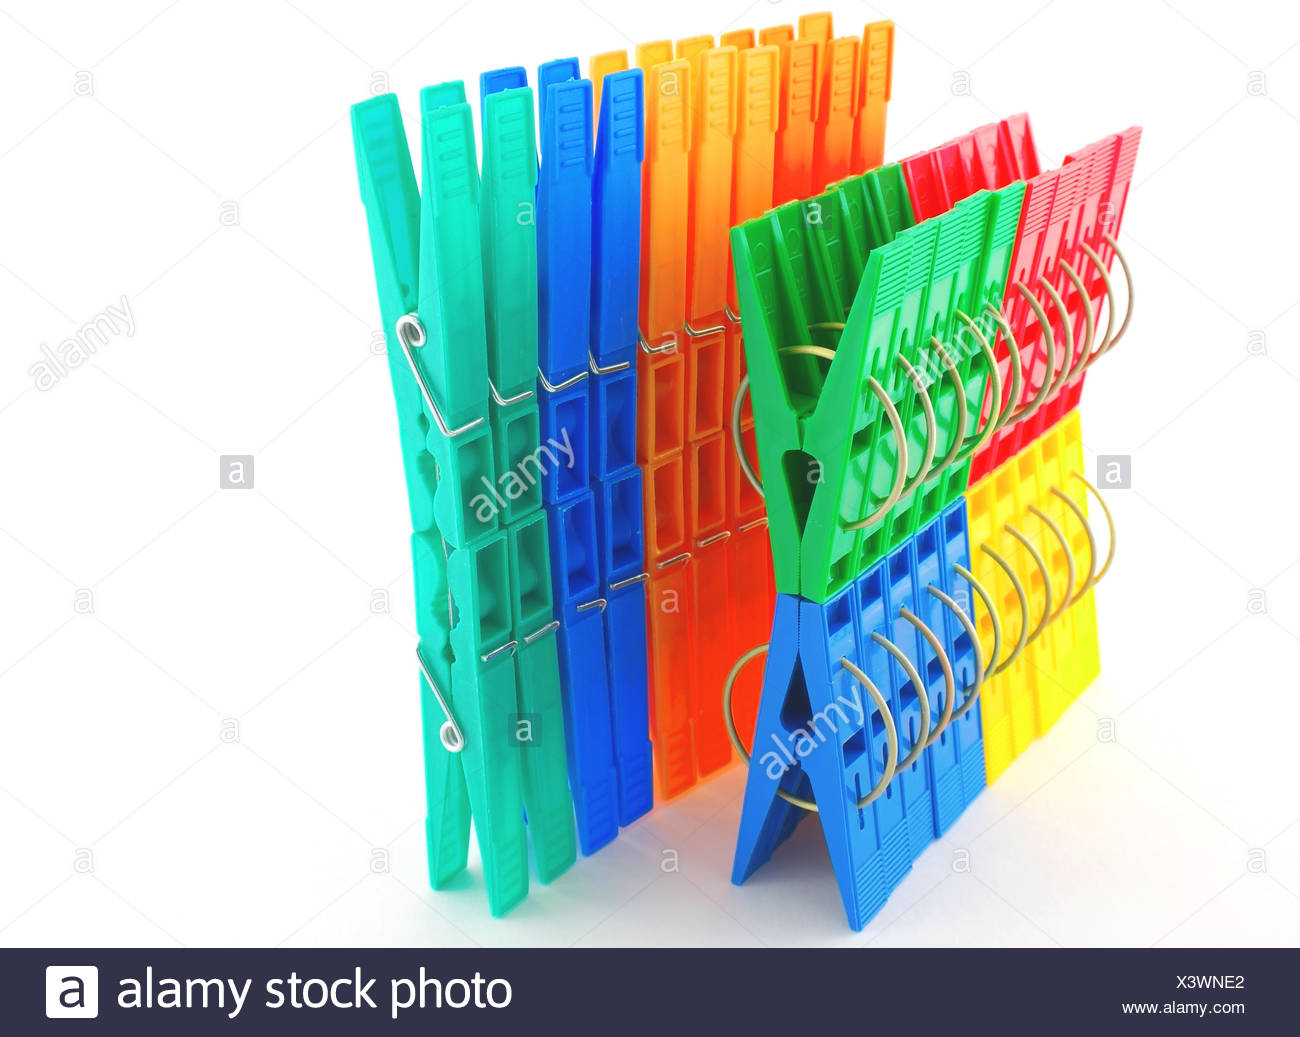 objects, plastic, synthetic material, peg, blue, objects